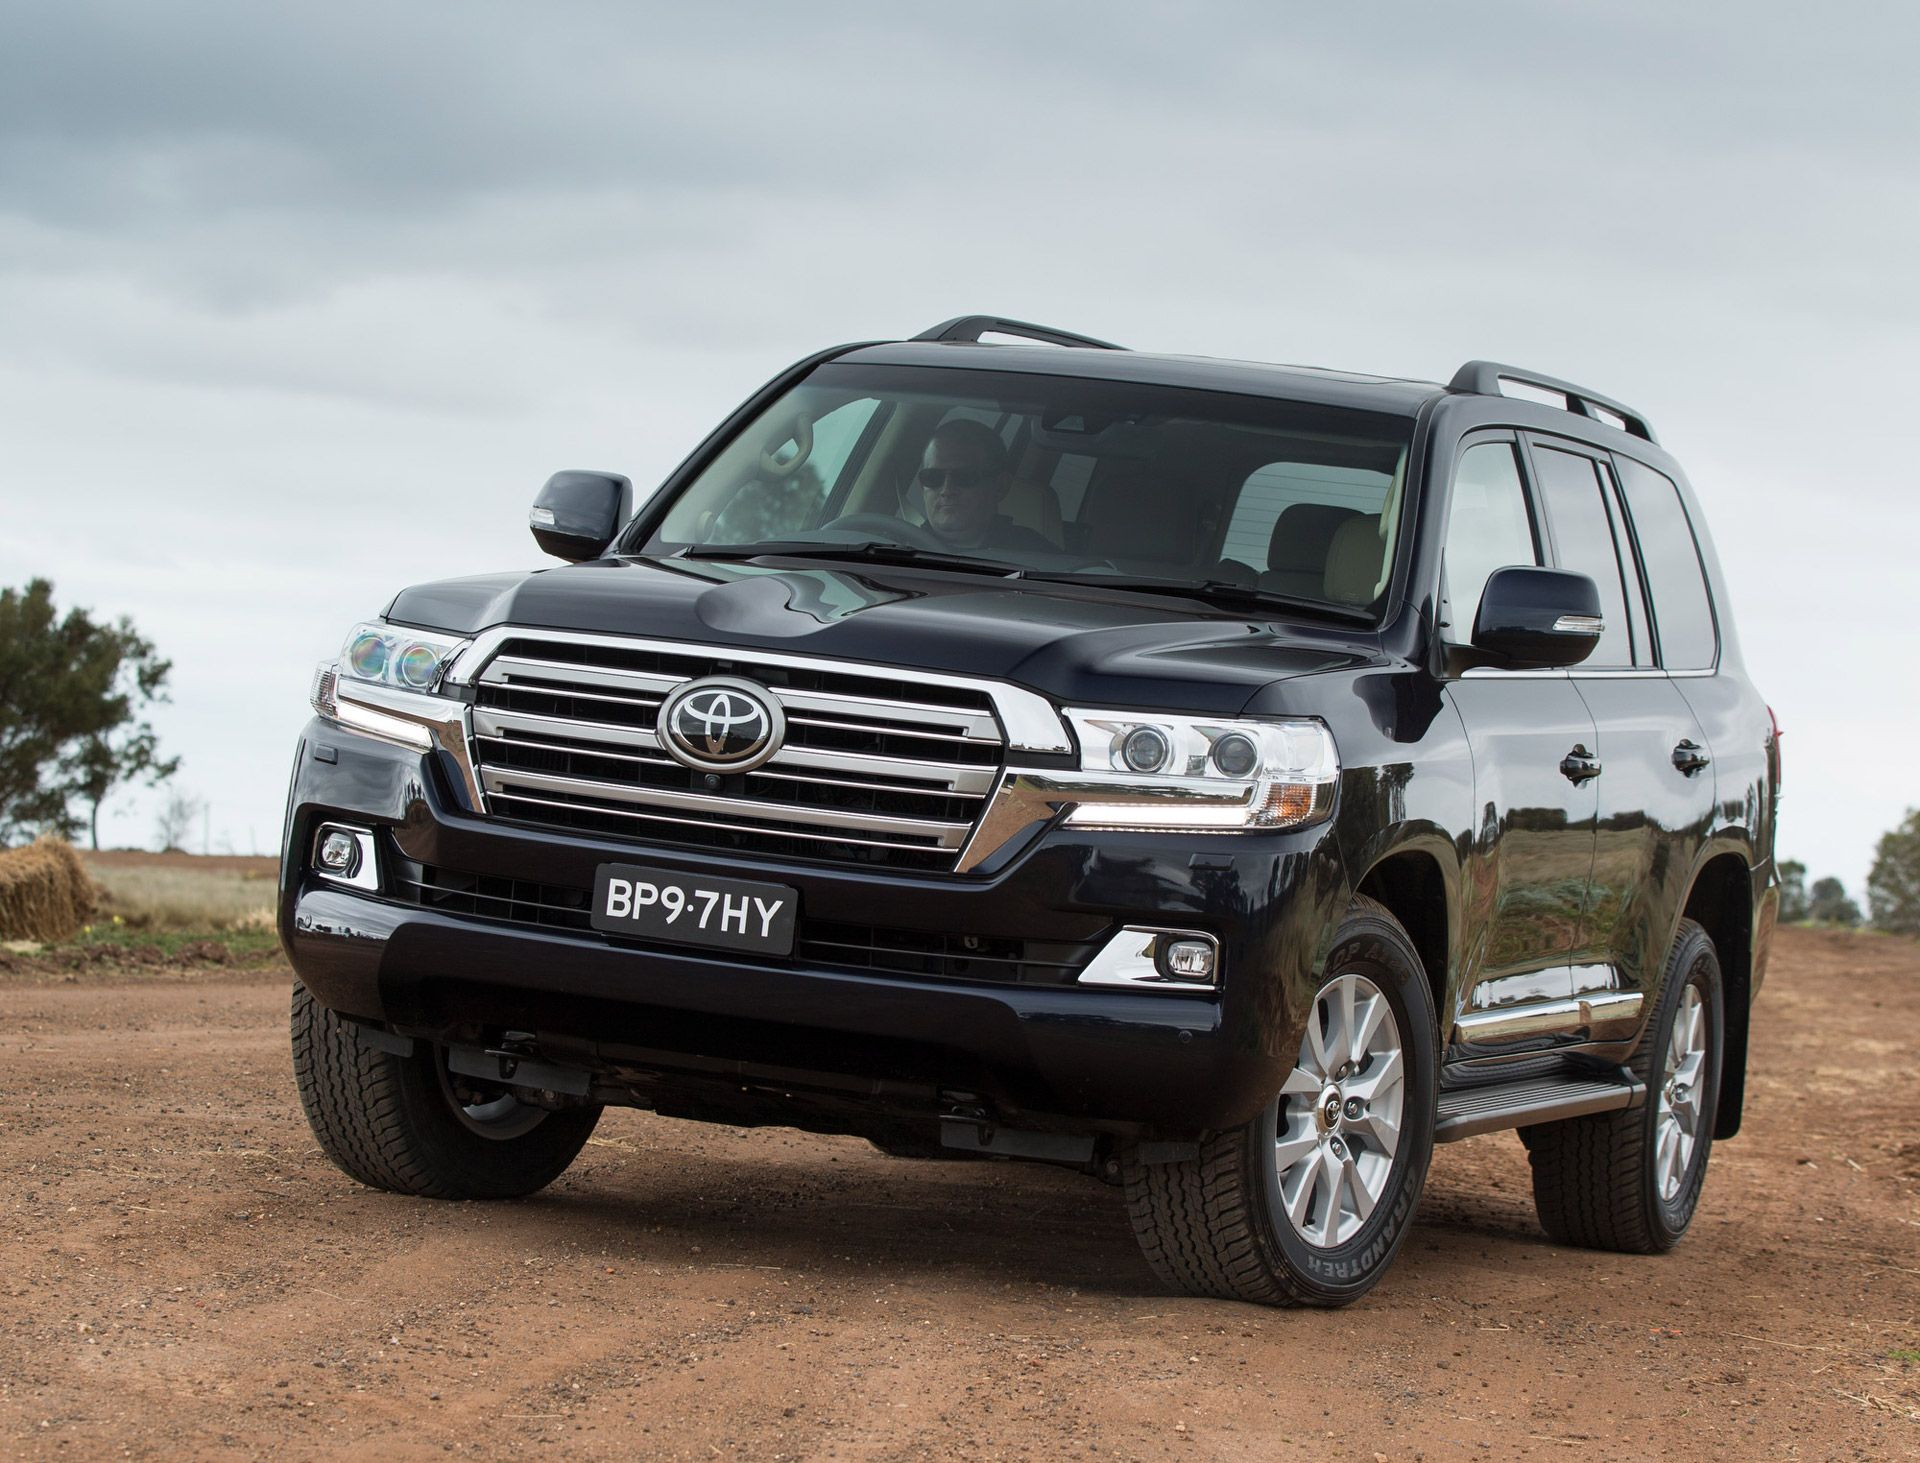 2016 toyota land cruiser australian spec 2016 toyota land cruiser australian spec view all get your own 2016 2016 toyota land cruiser australian spec new